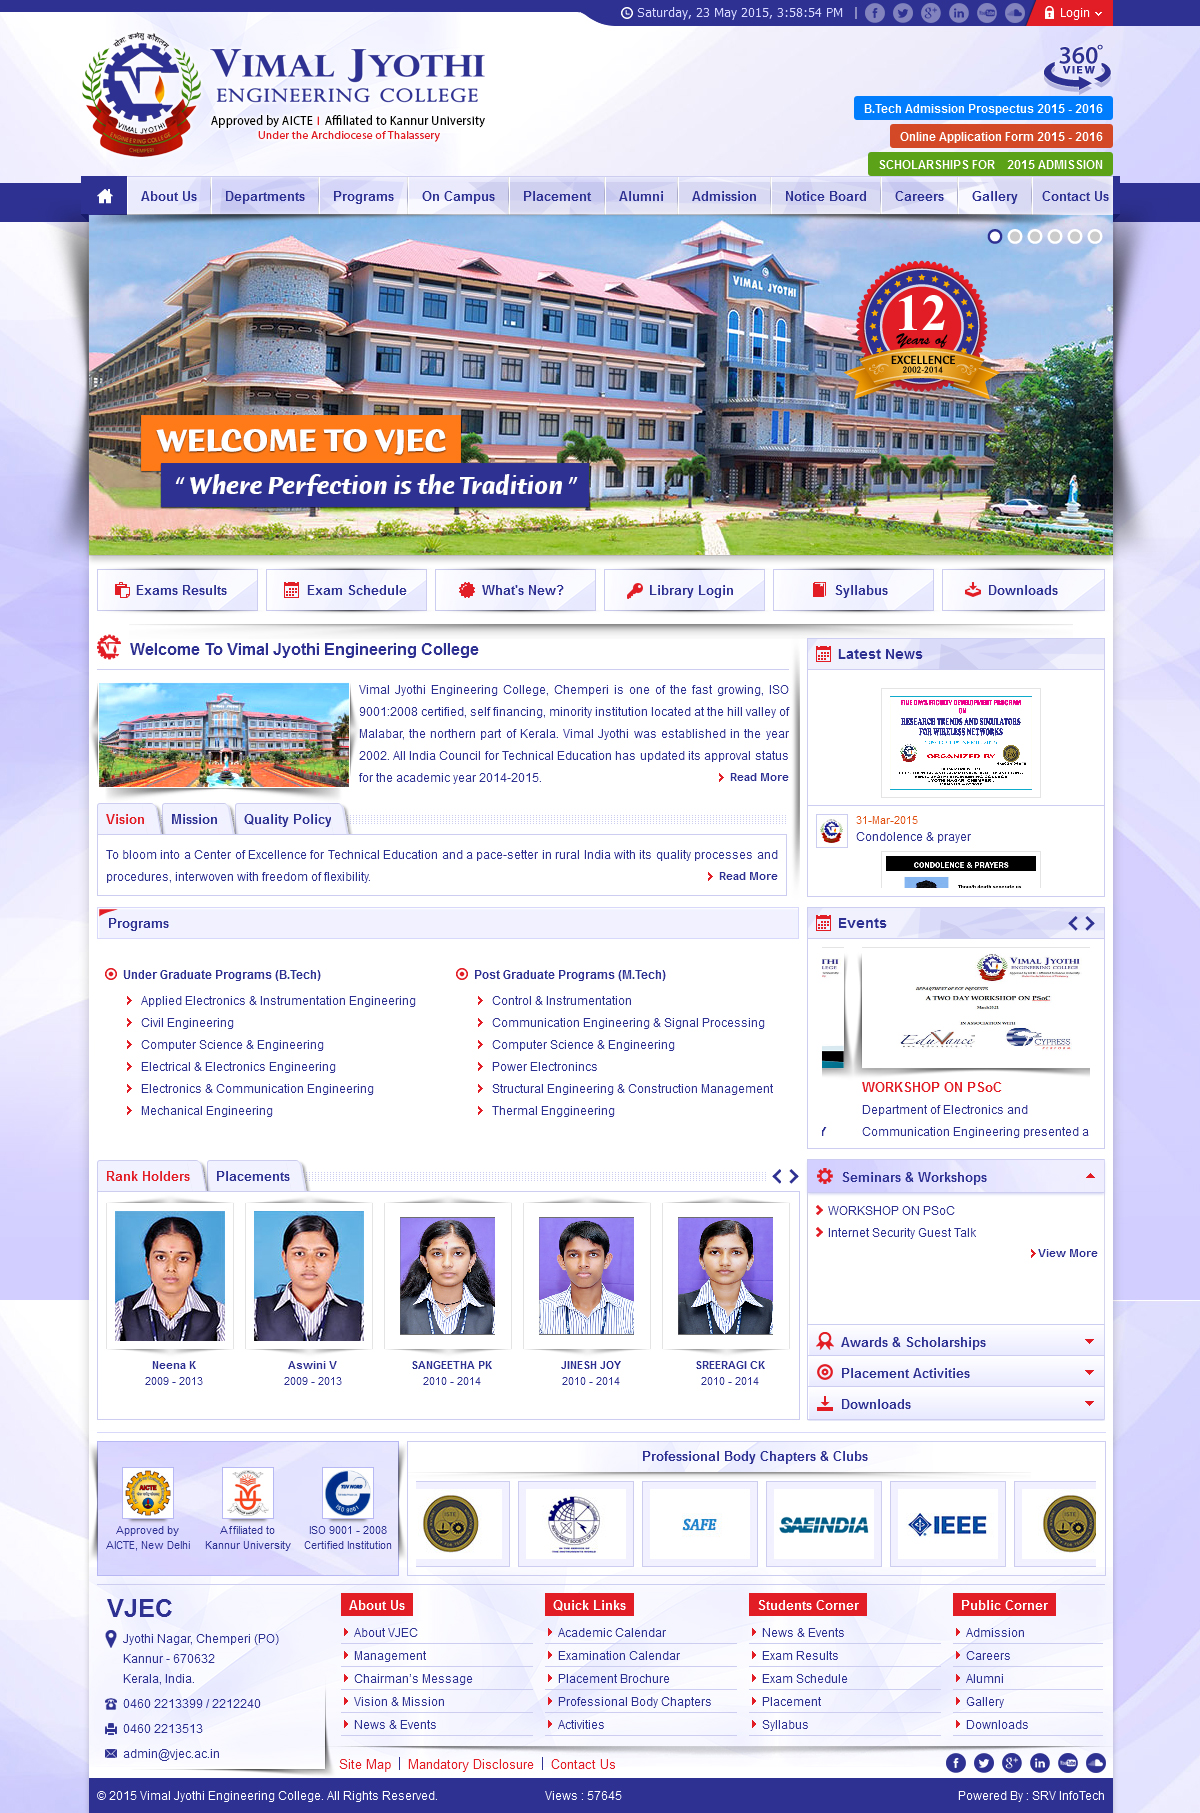 Vimal Jyothi Engineering College - SRV InfoTech Project